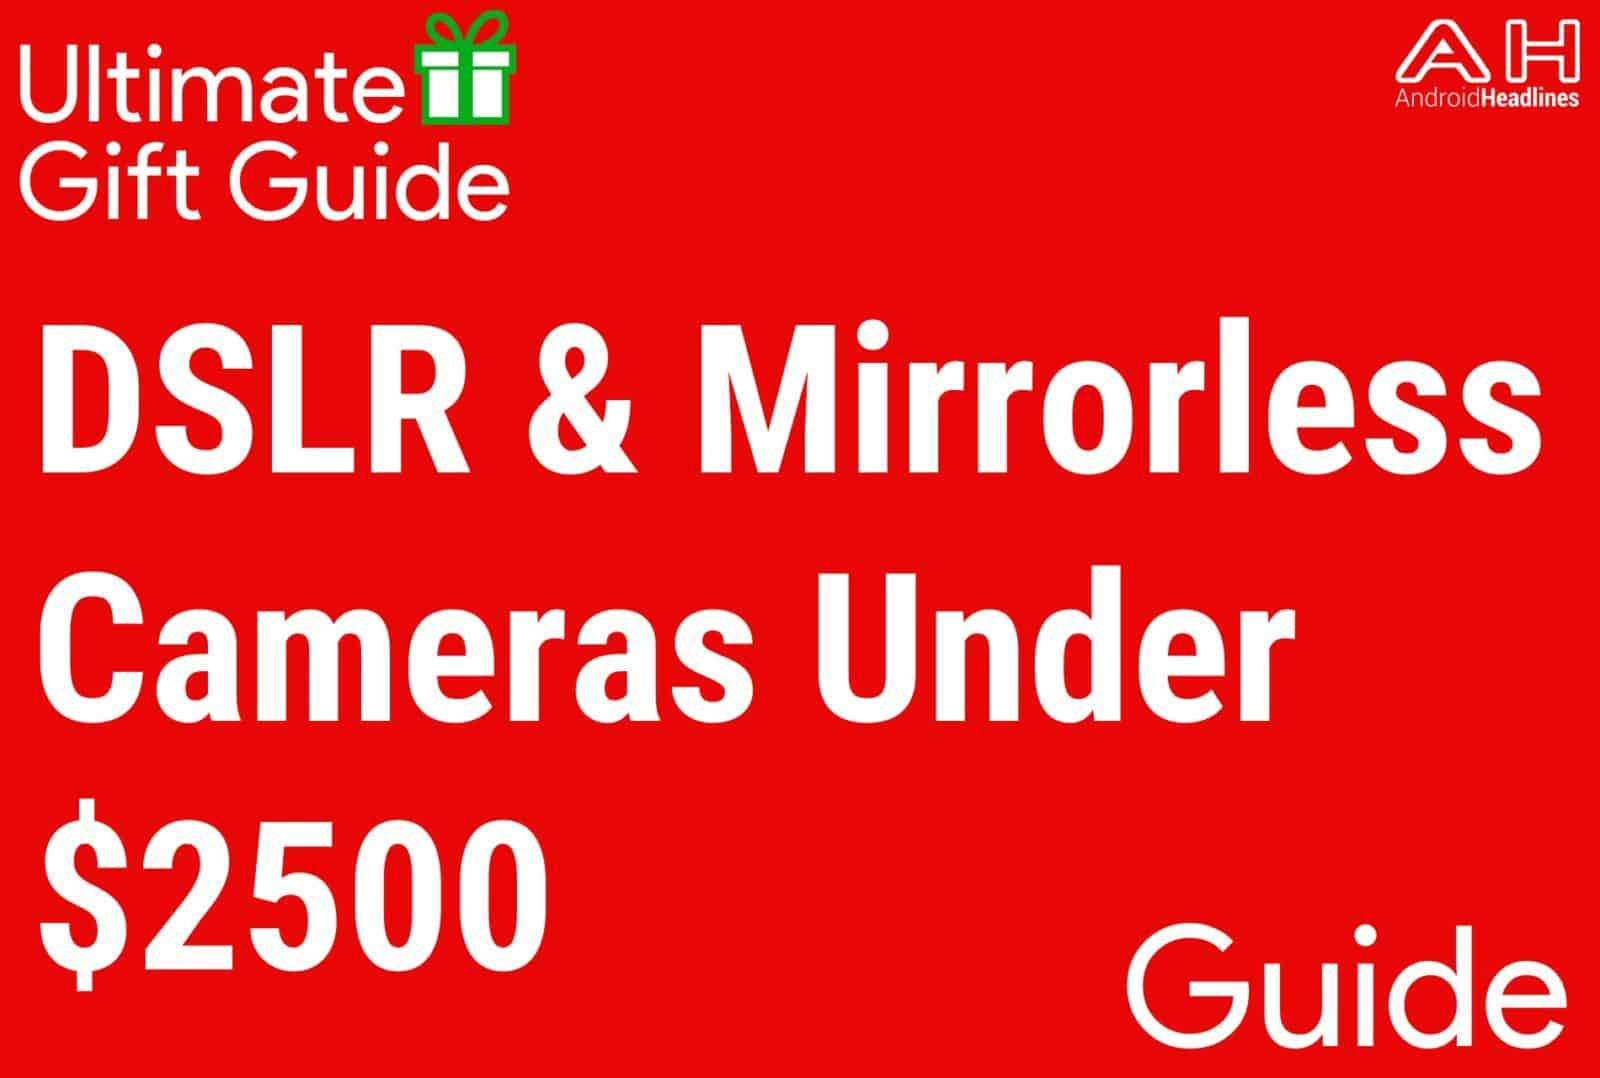 DSLR and Mirrorless Cameras Under $2500 - Gift Guide